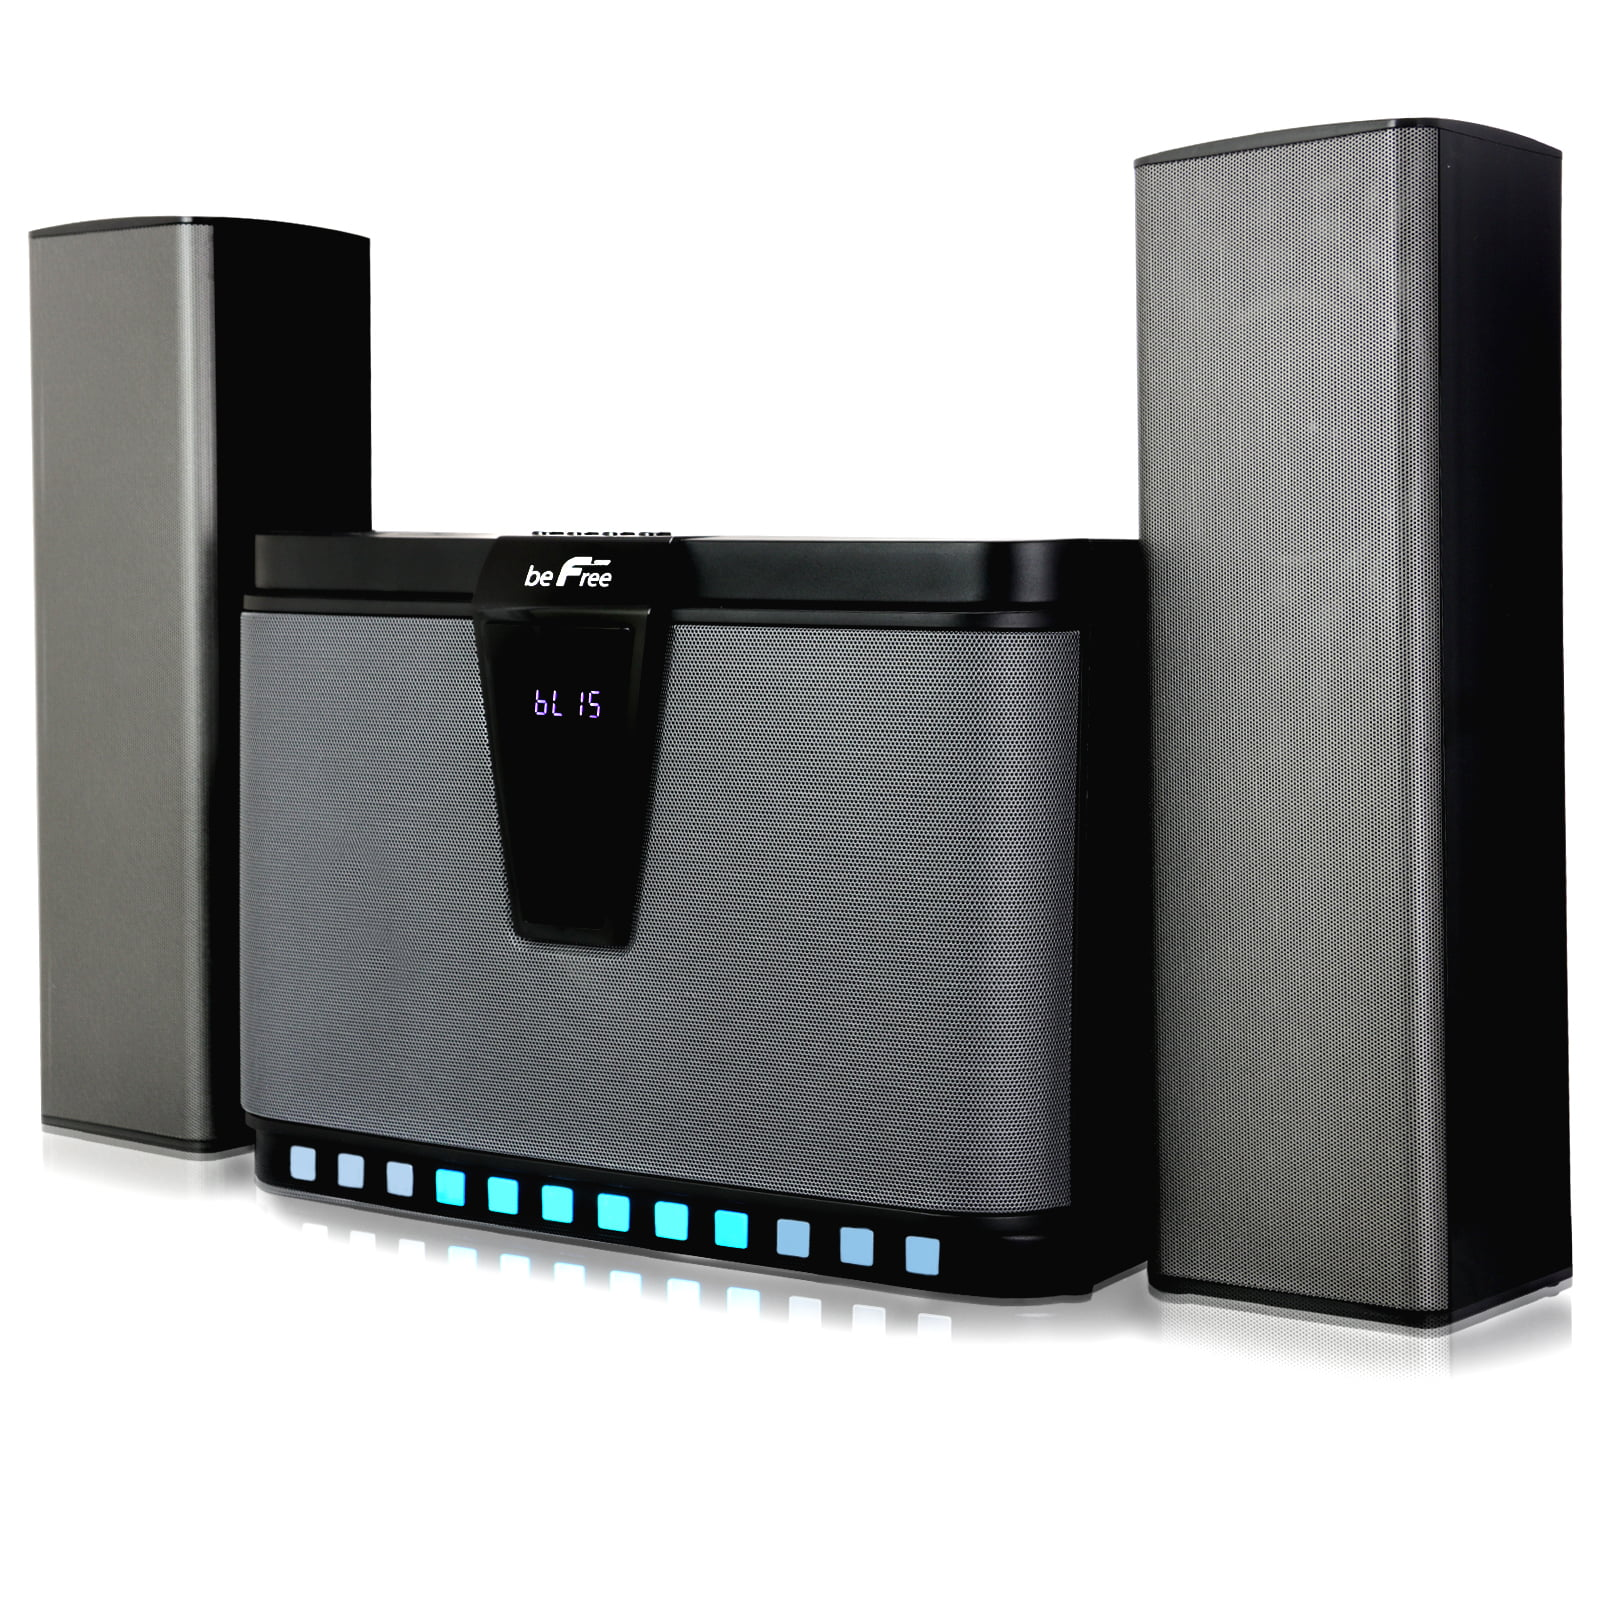 SD and full function remote control beFree Sound 2.1 Bluetooth Speaker System for any PC or Home Entertainment with FM Radio